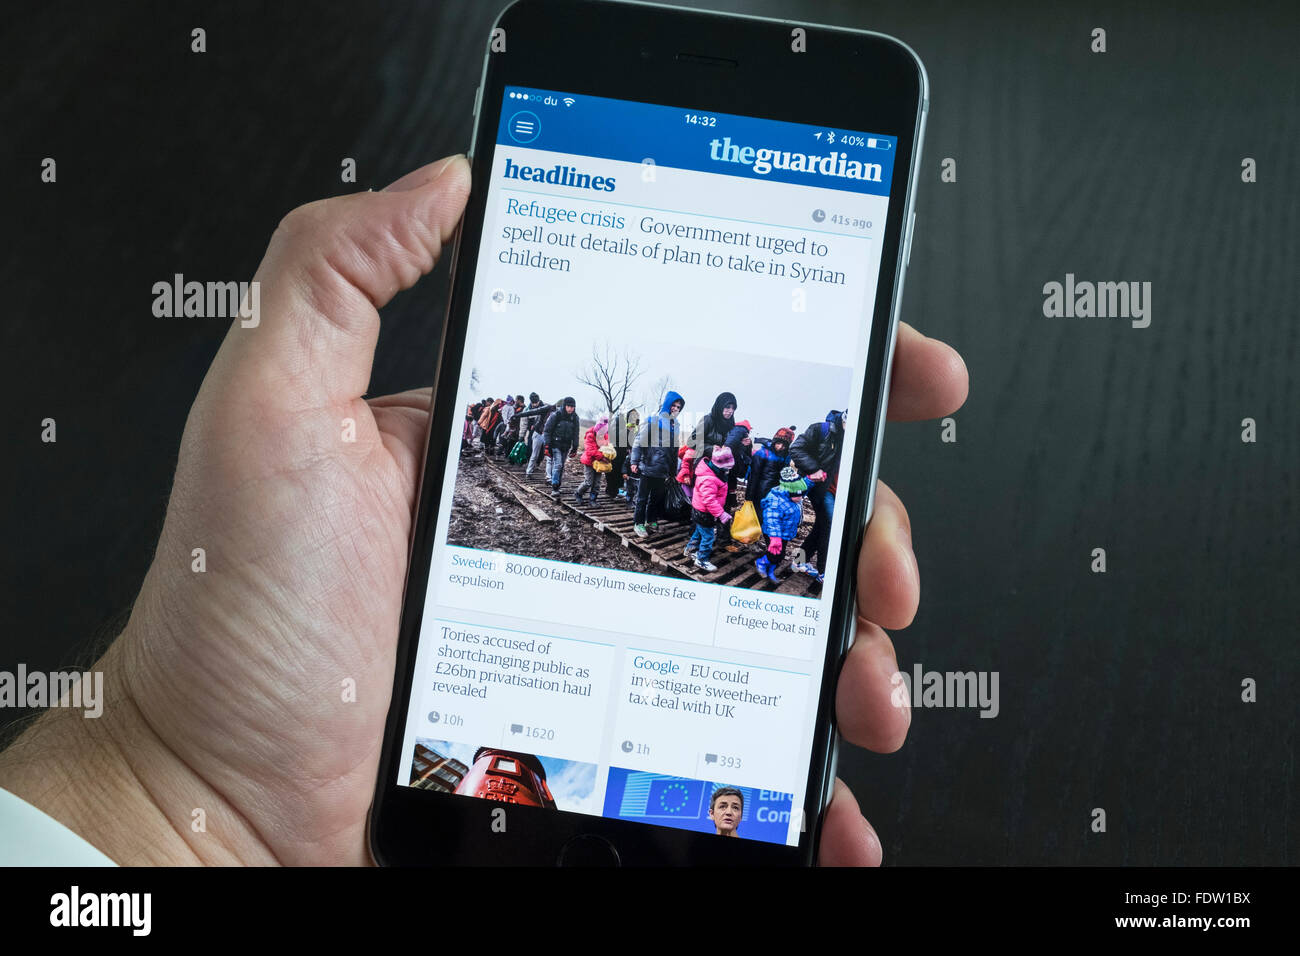 The Guardian news app on iPhone 6 Plus smart phone - Stock Image